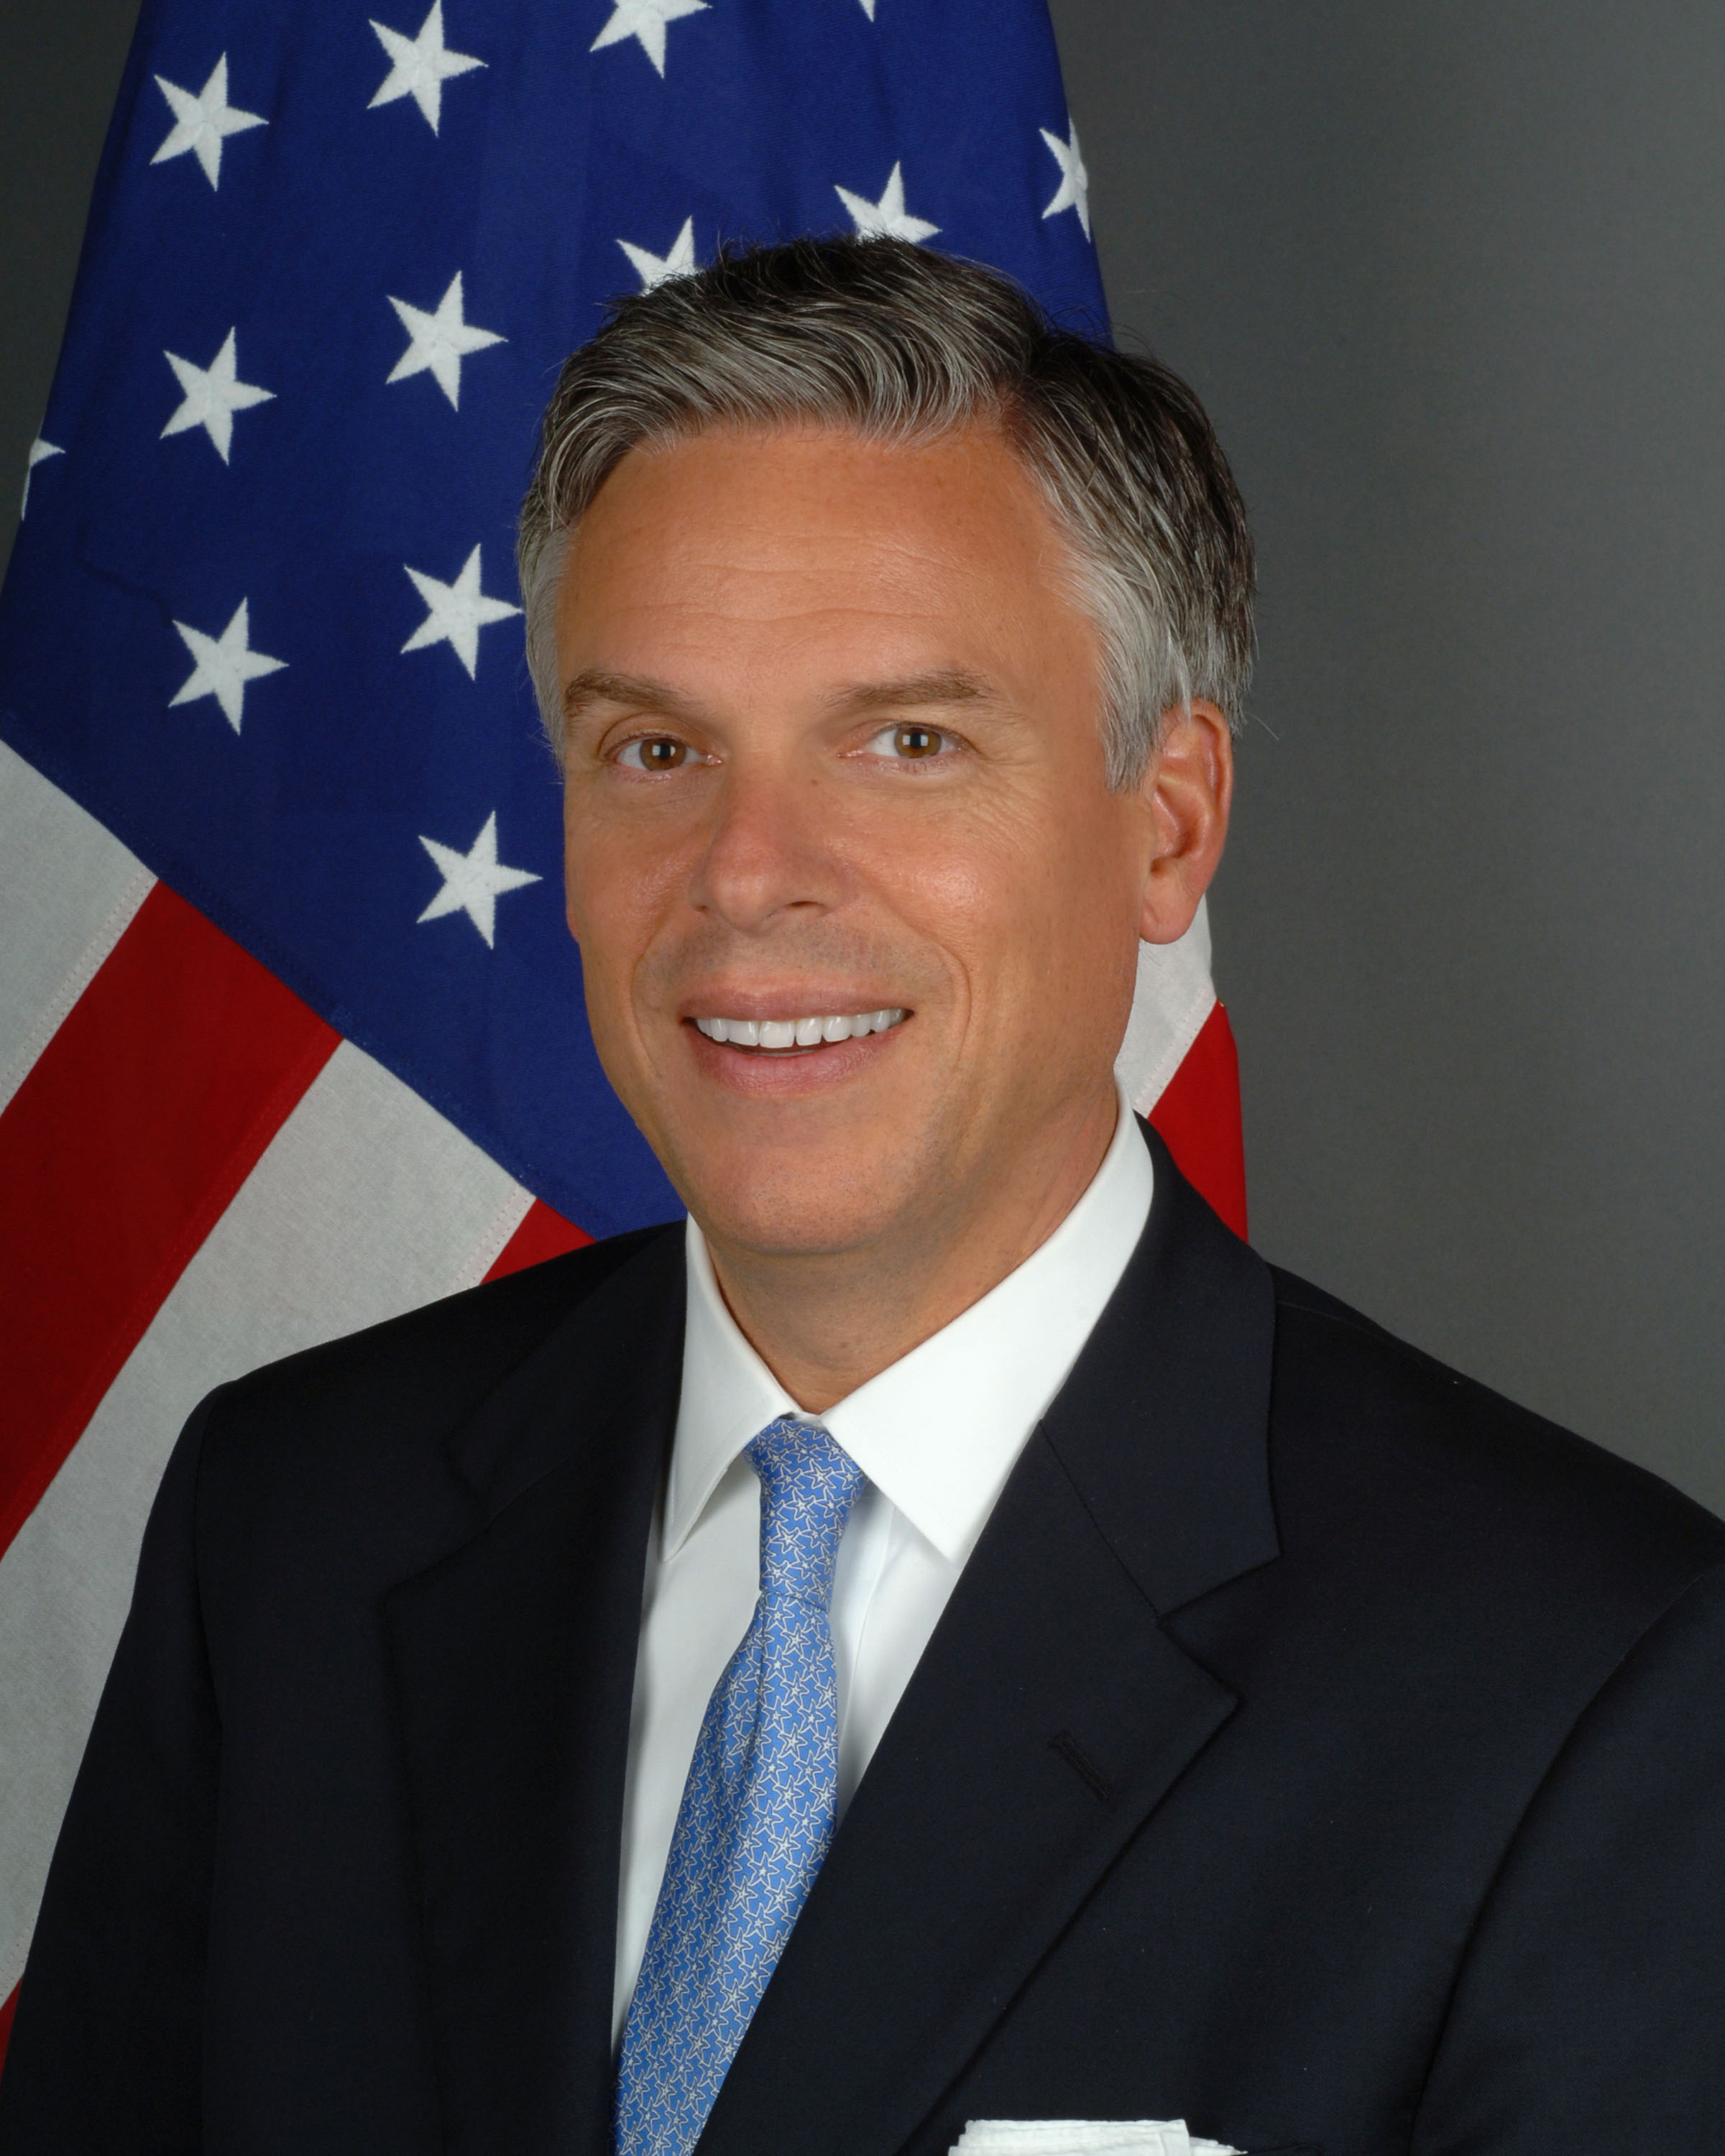 Photo of Jon Huntsman